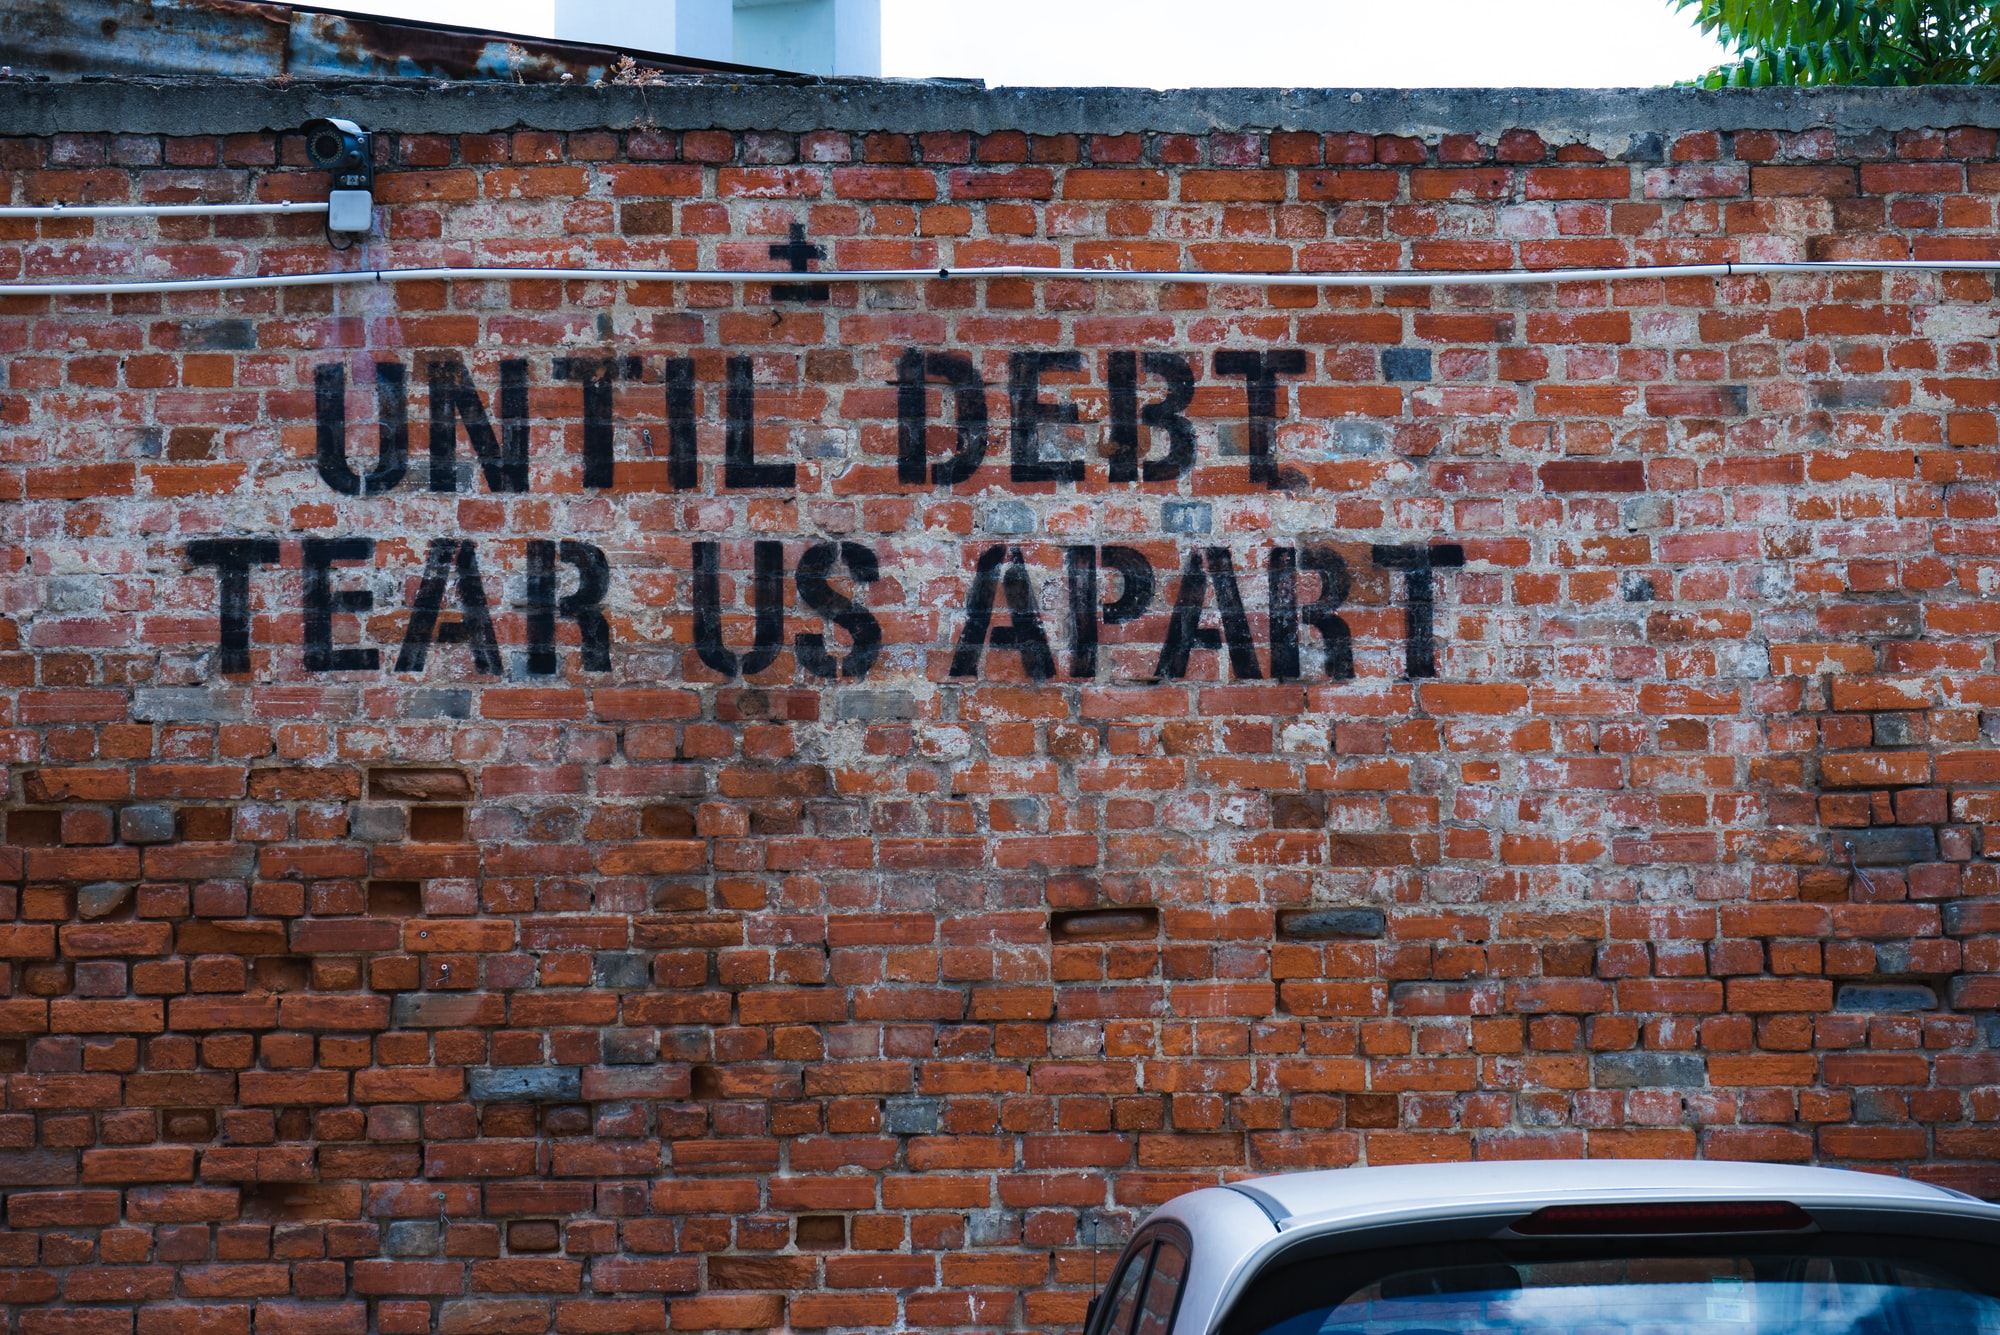 Stuck in a debt trap? Take these 5 steps to become debt-free